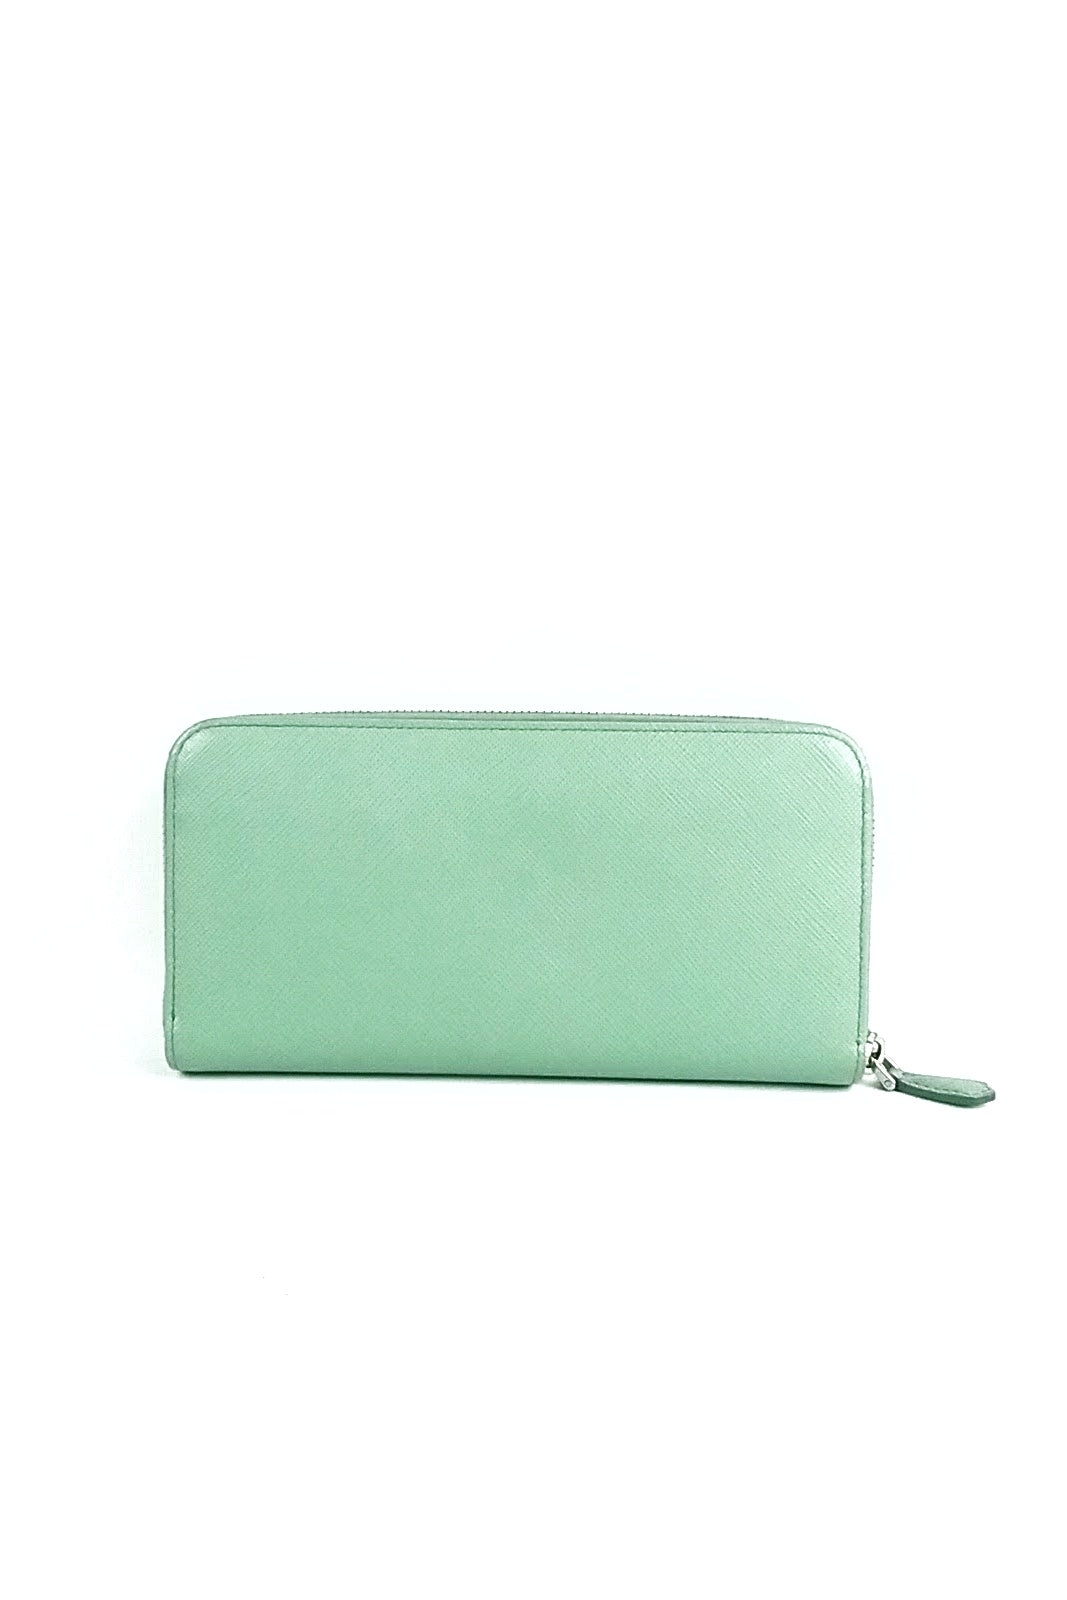 Mint Green Saffiano Leather Bowtie Zip Around Wallet SHW